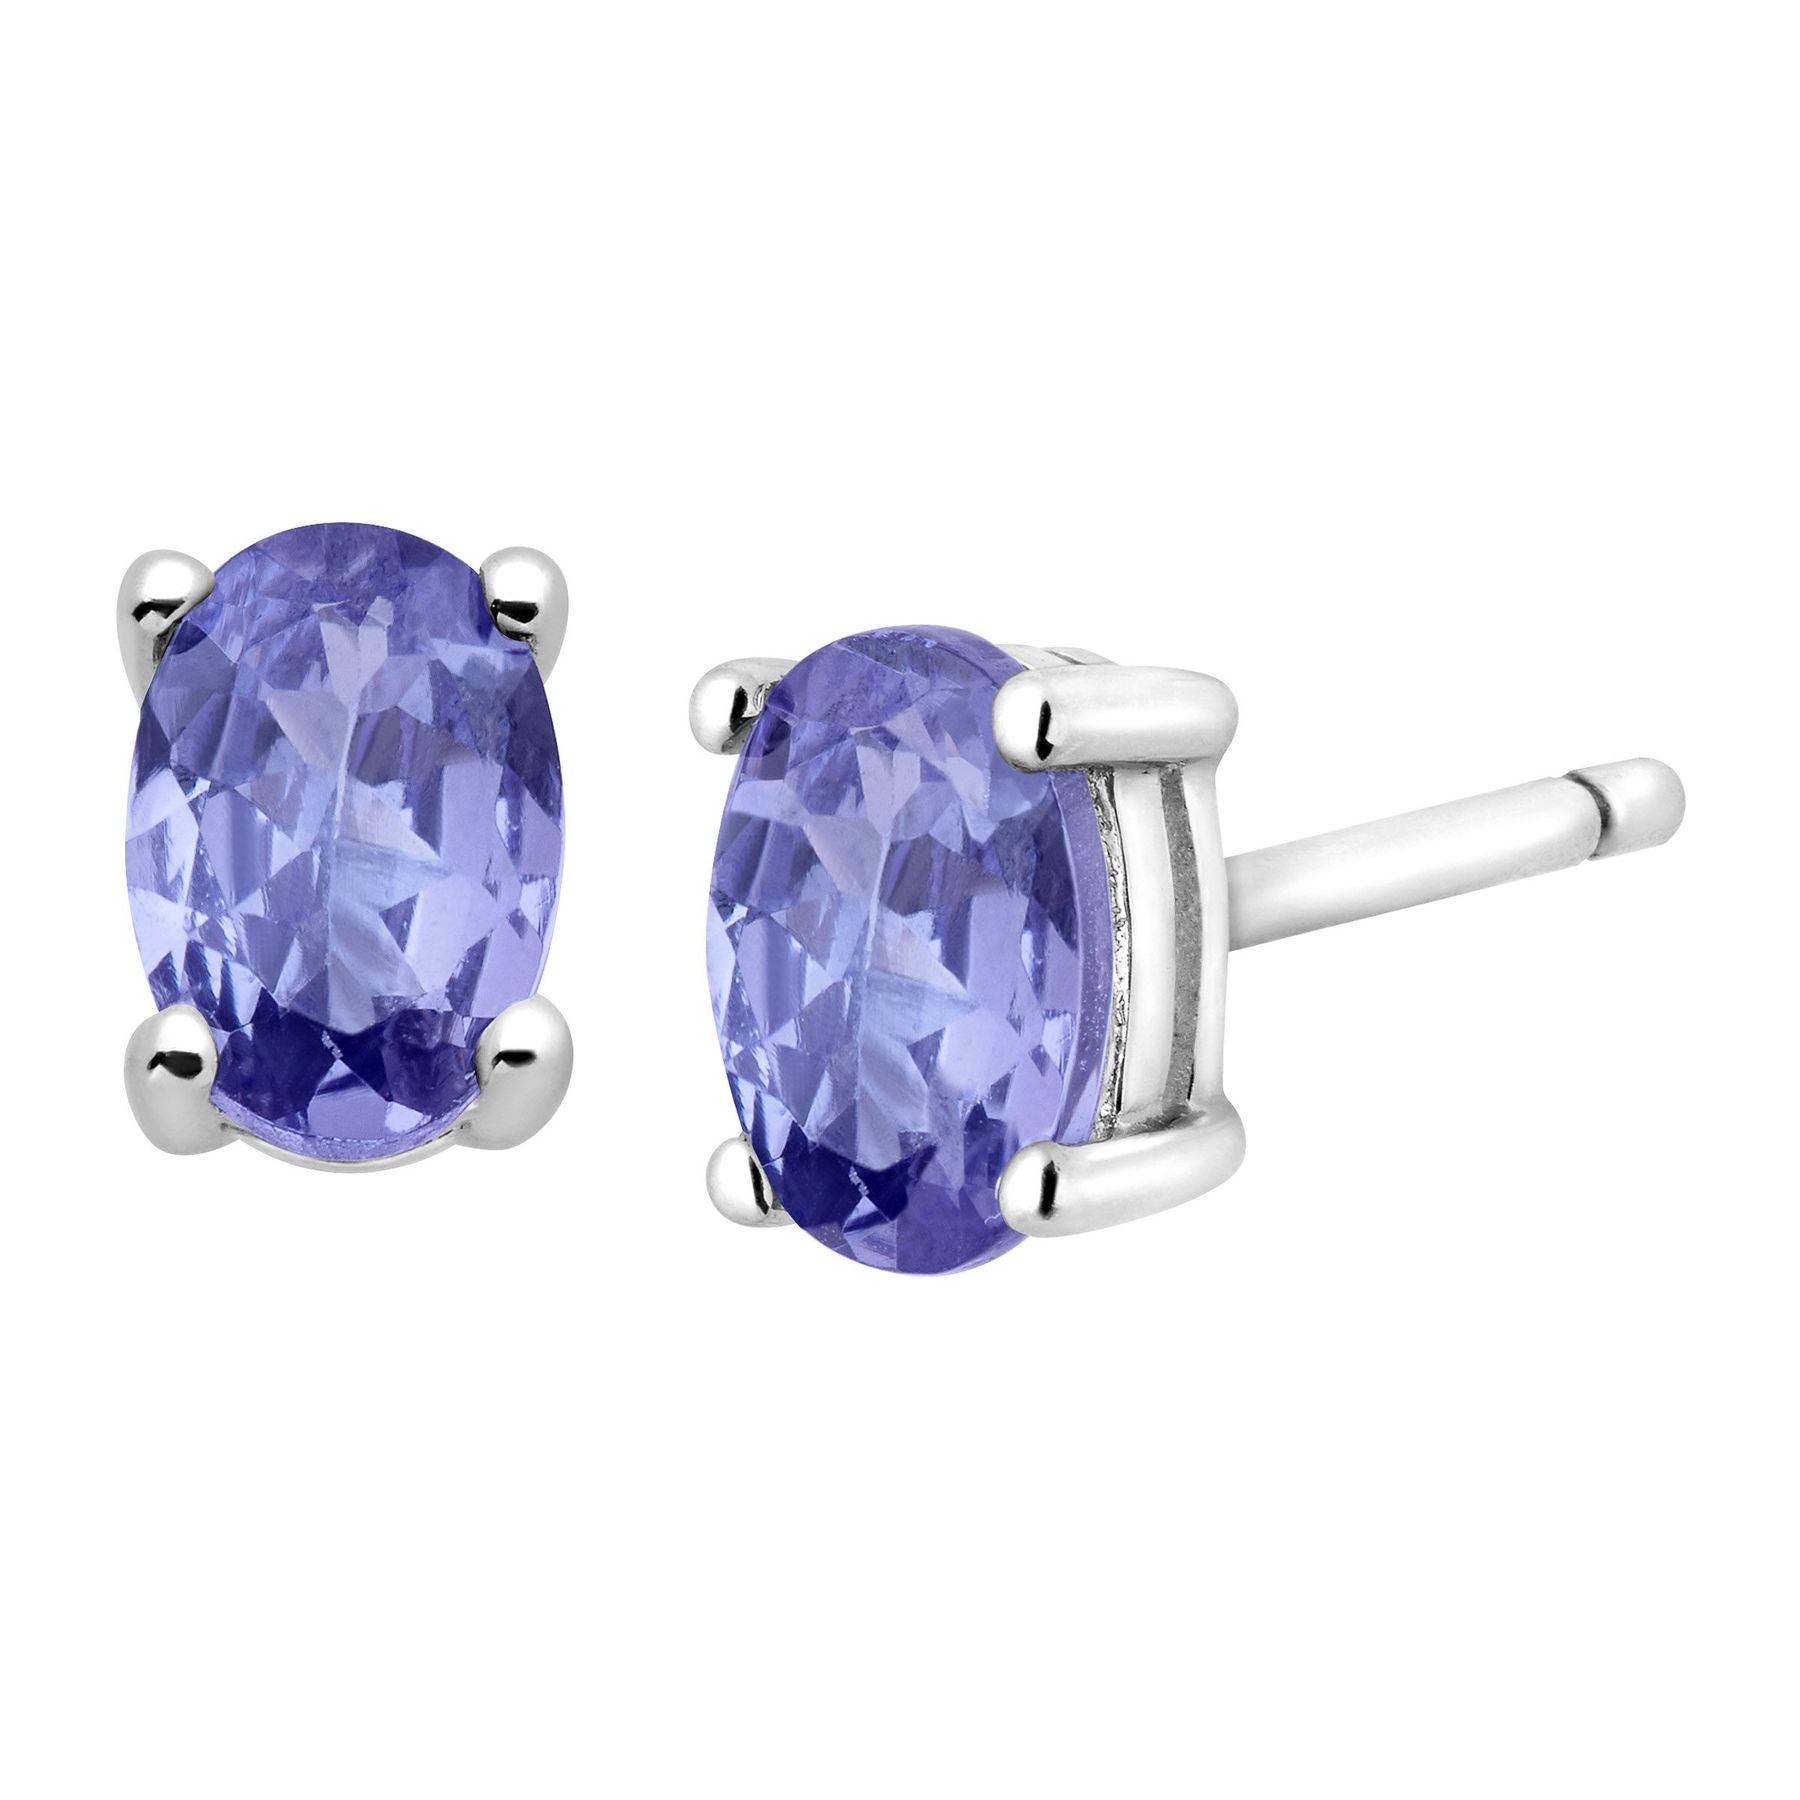 oval cut certified natural mm pair blue pin violet gemstones cts tanzanite